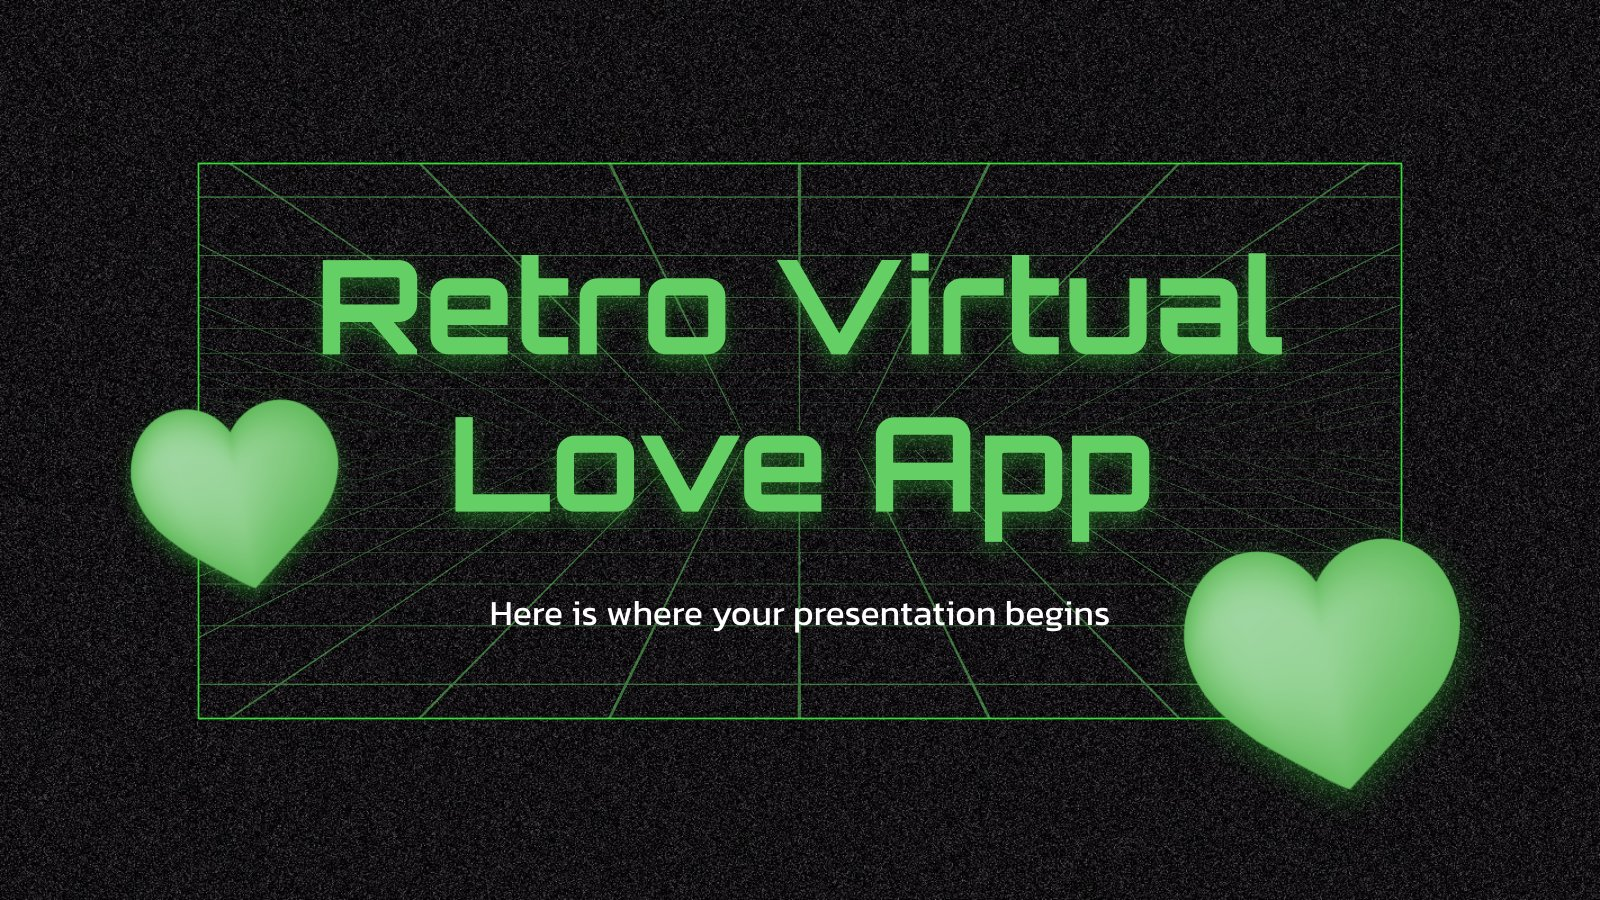 Retro Virtual Love App presentation template